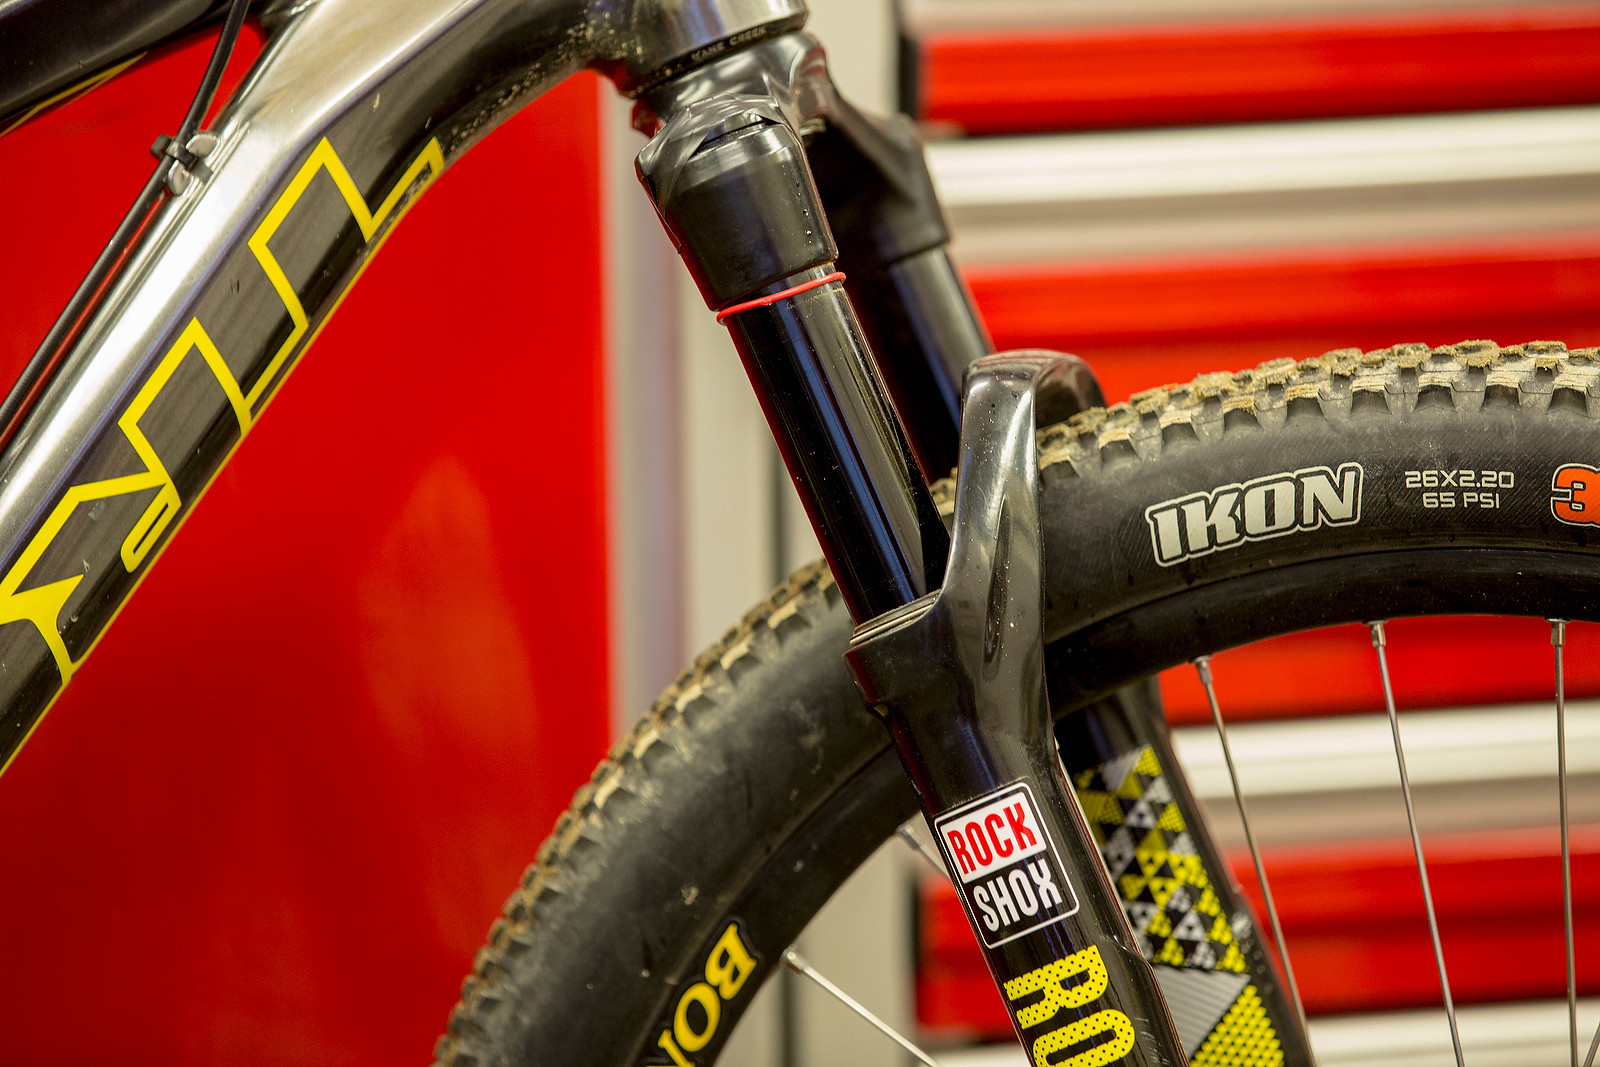 Brandon Semenuk's Winning Bike - Winning Bike: Brandon Semenuk's Trek Ticket S - Mountain Biking Pictures - Vital MTB